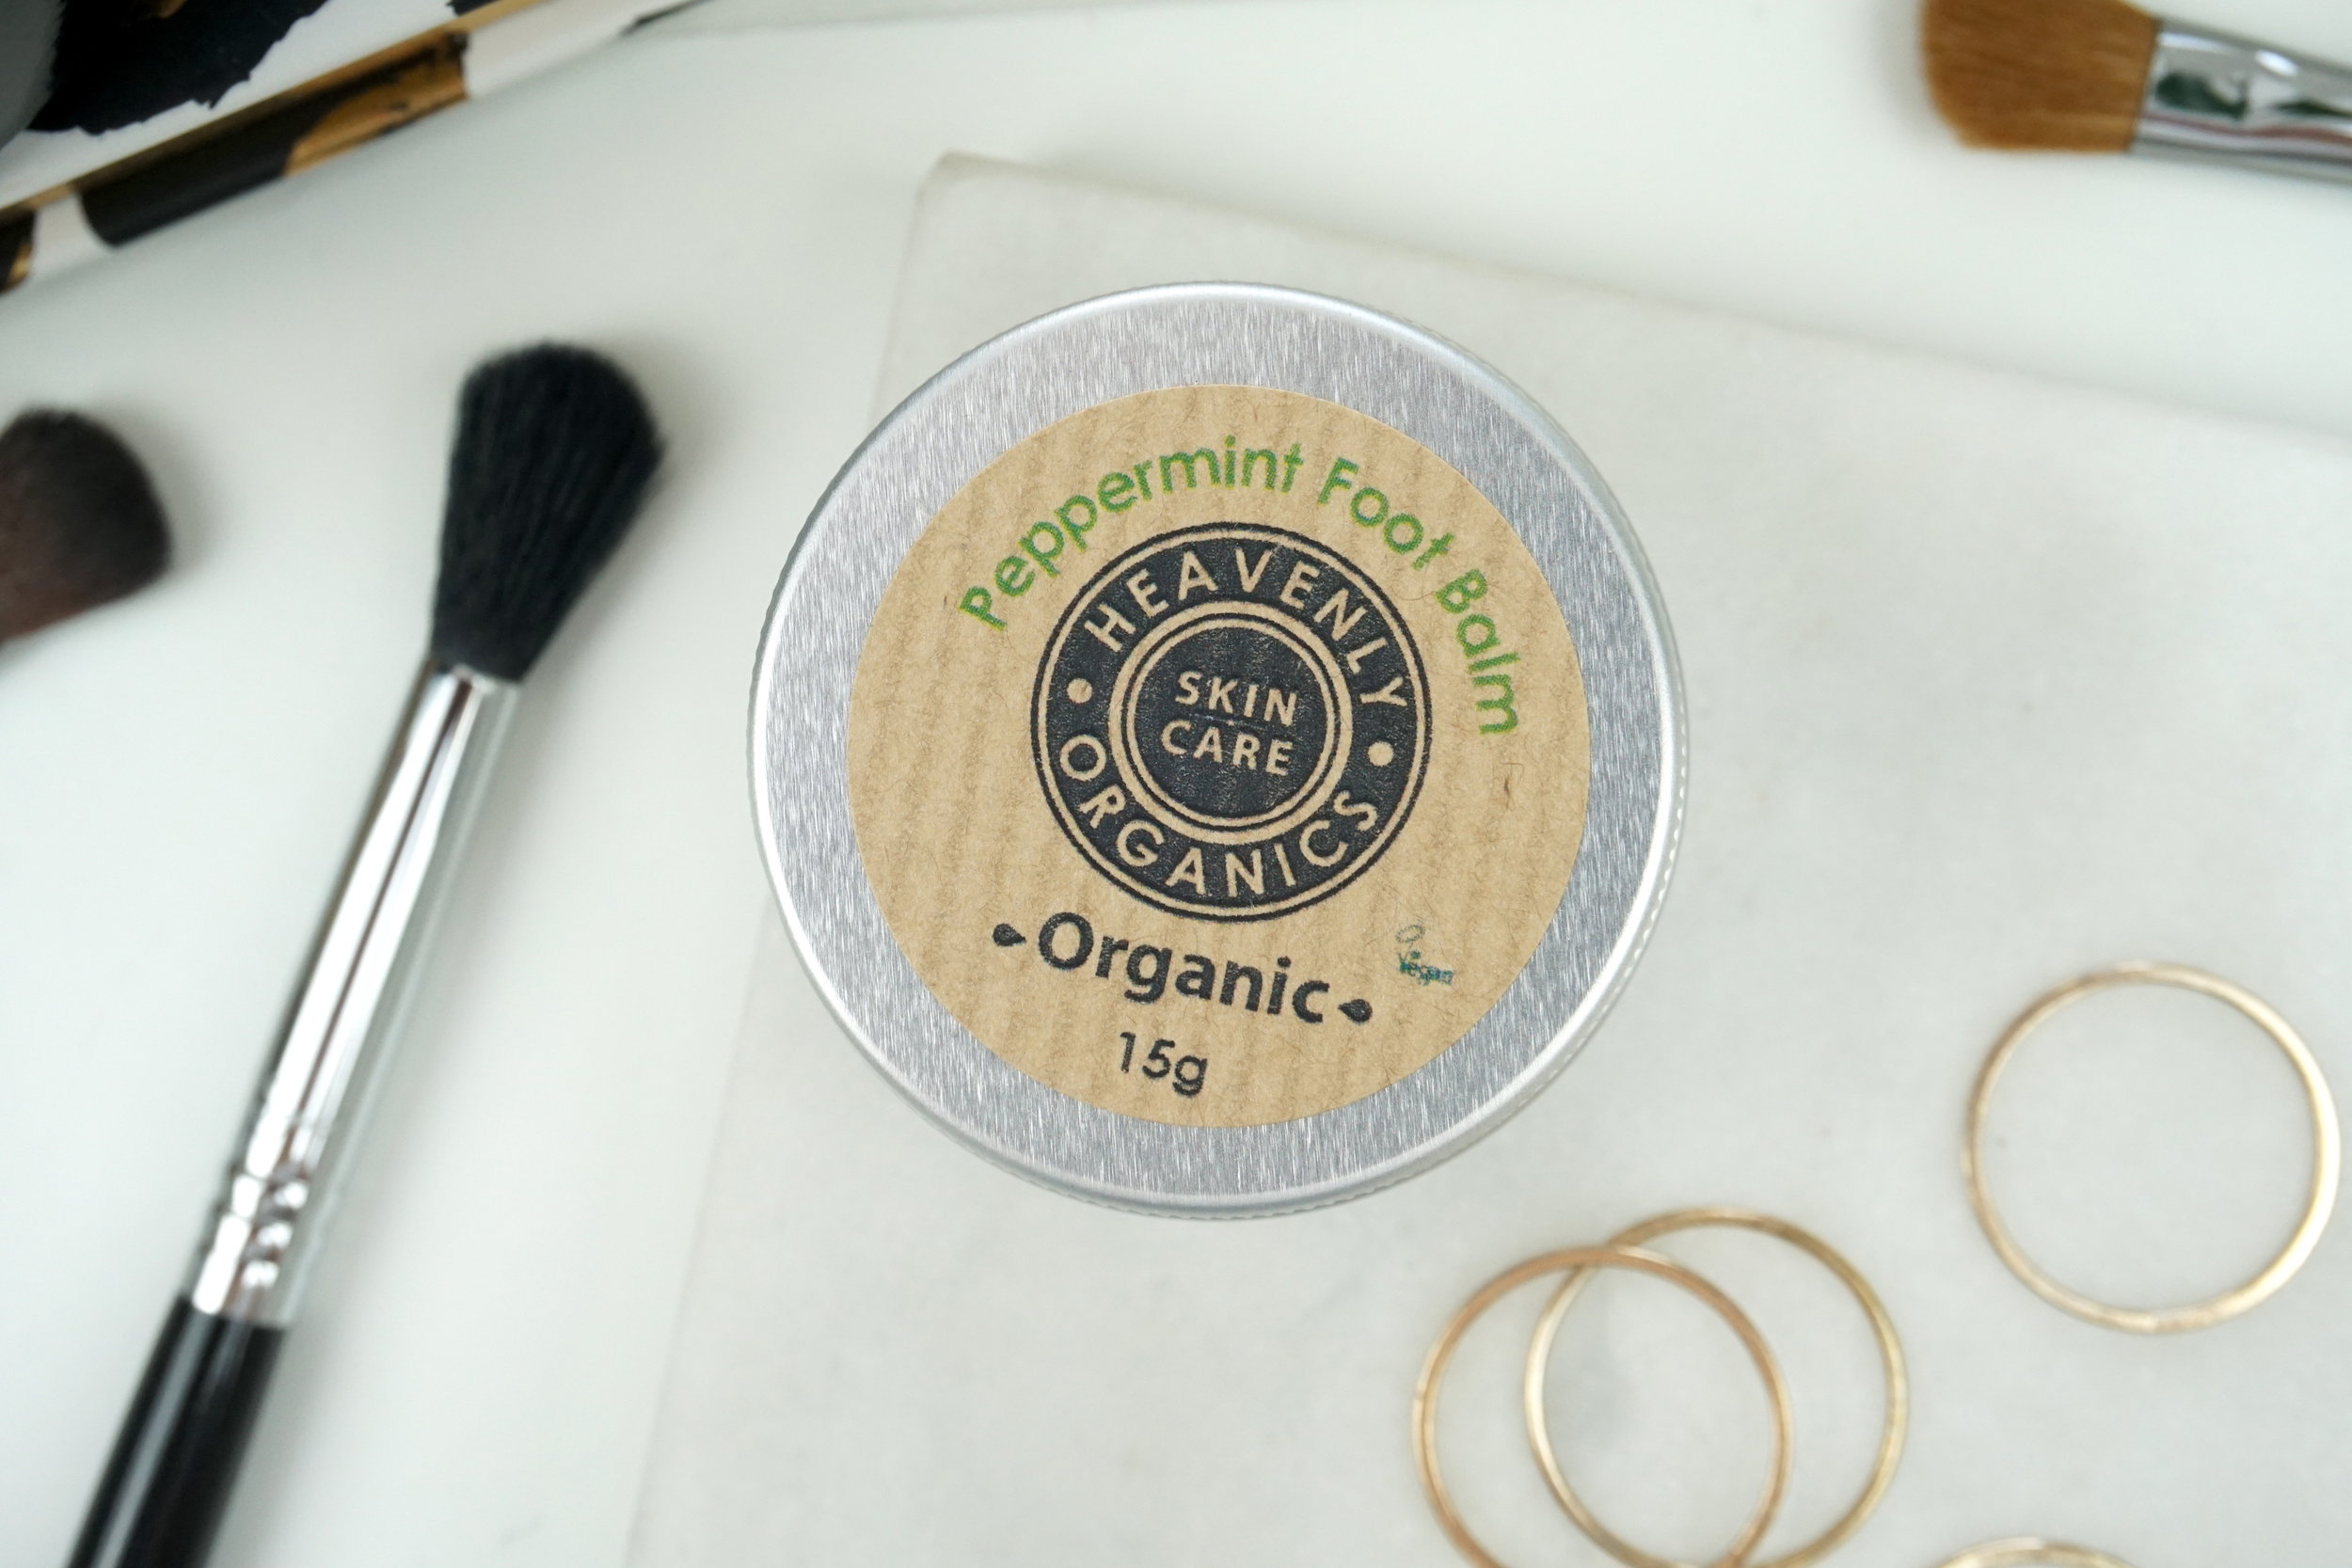 Heavenly Organics - Peppermint Foot Balm